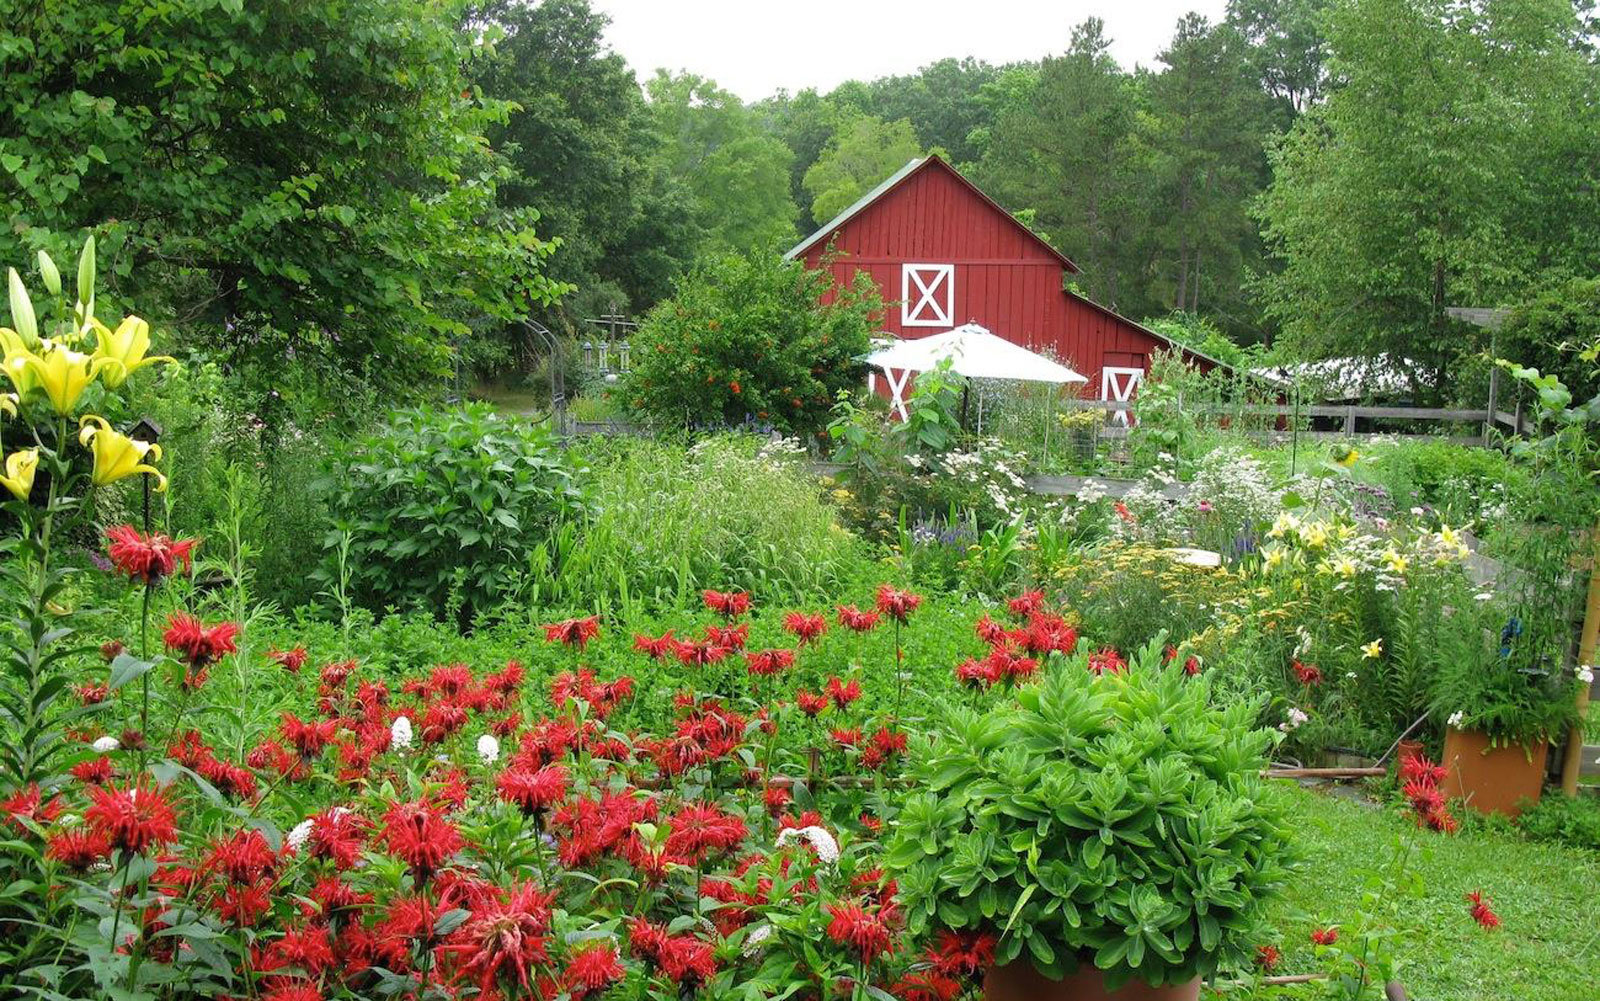 bluebird-hill-farm-barn-FARM217.jpg